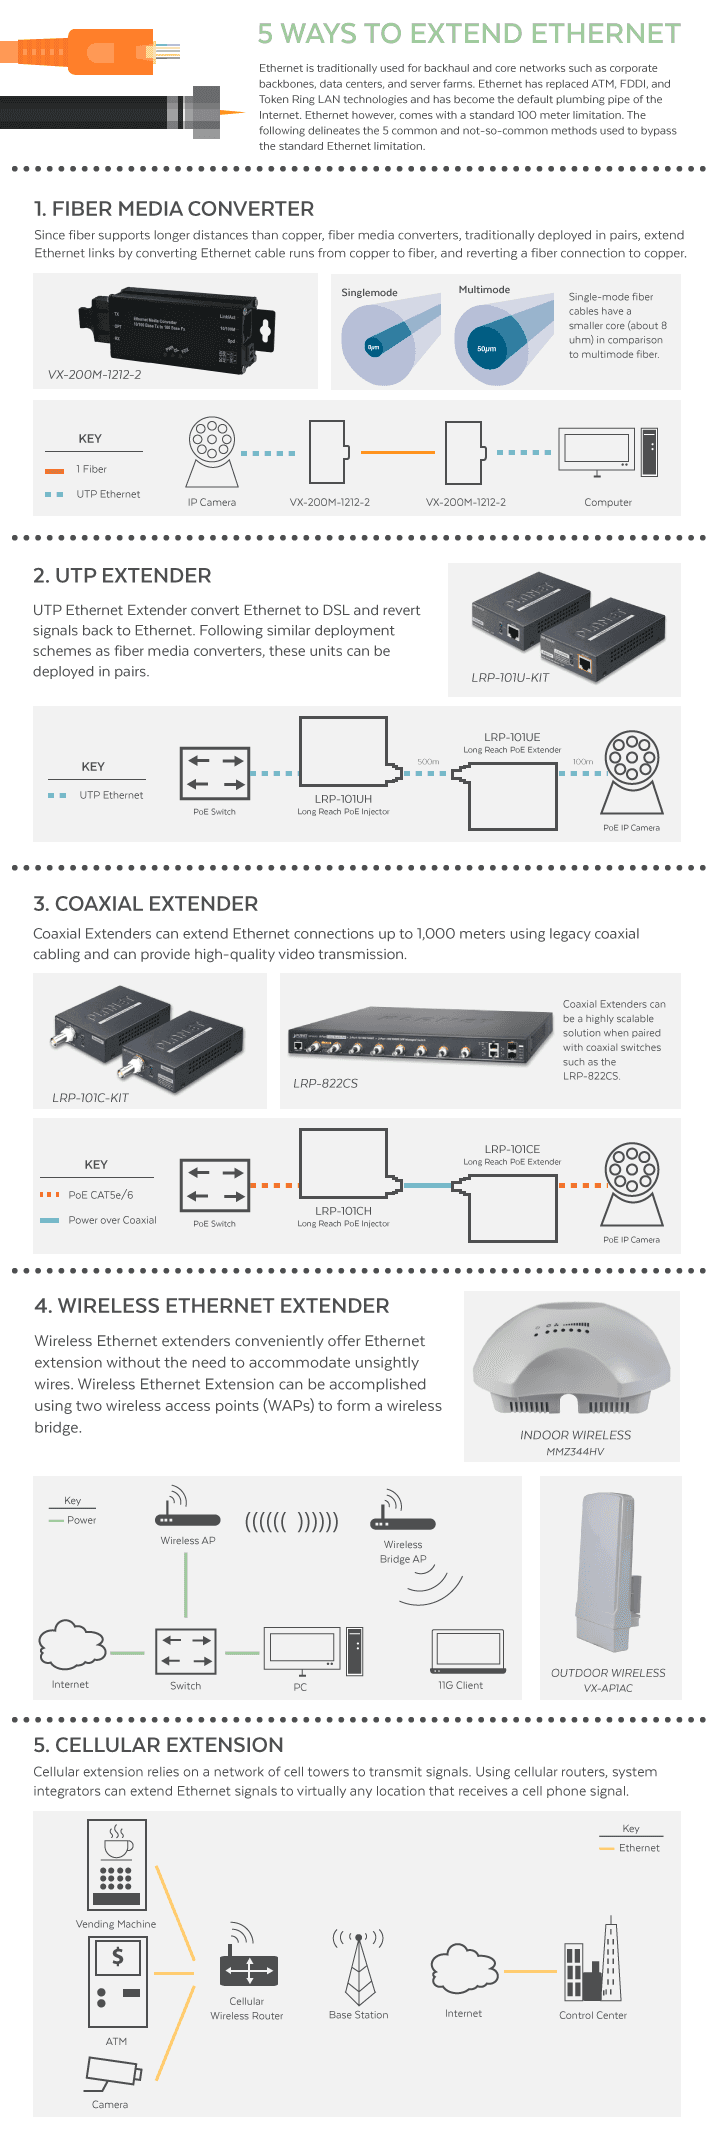 Top 5 Ways To Extend Ethernet With Infographic Versa Technology Poe Cable Wiring Com Power Over Four Port Cat5 Was